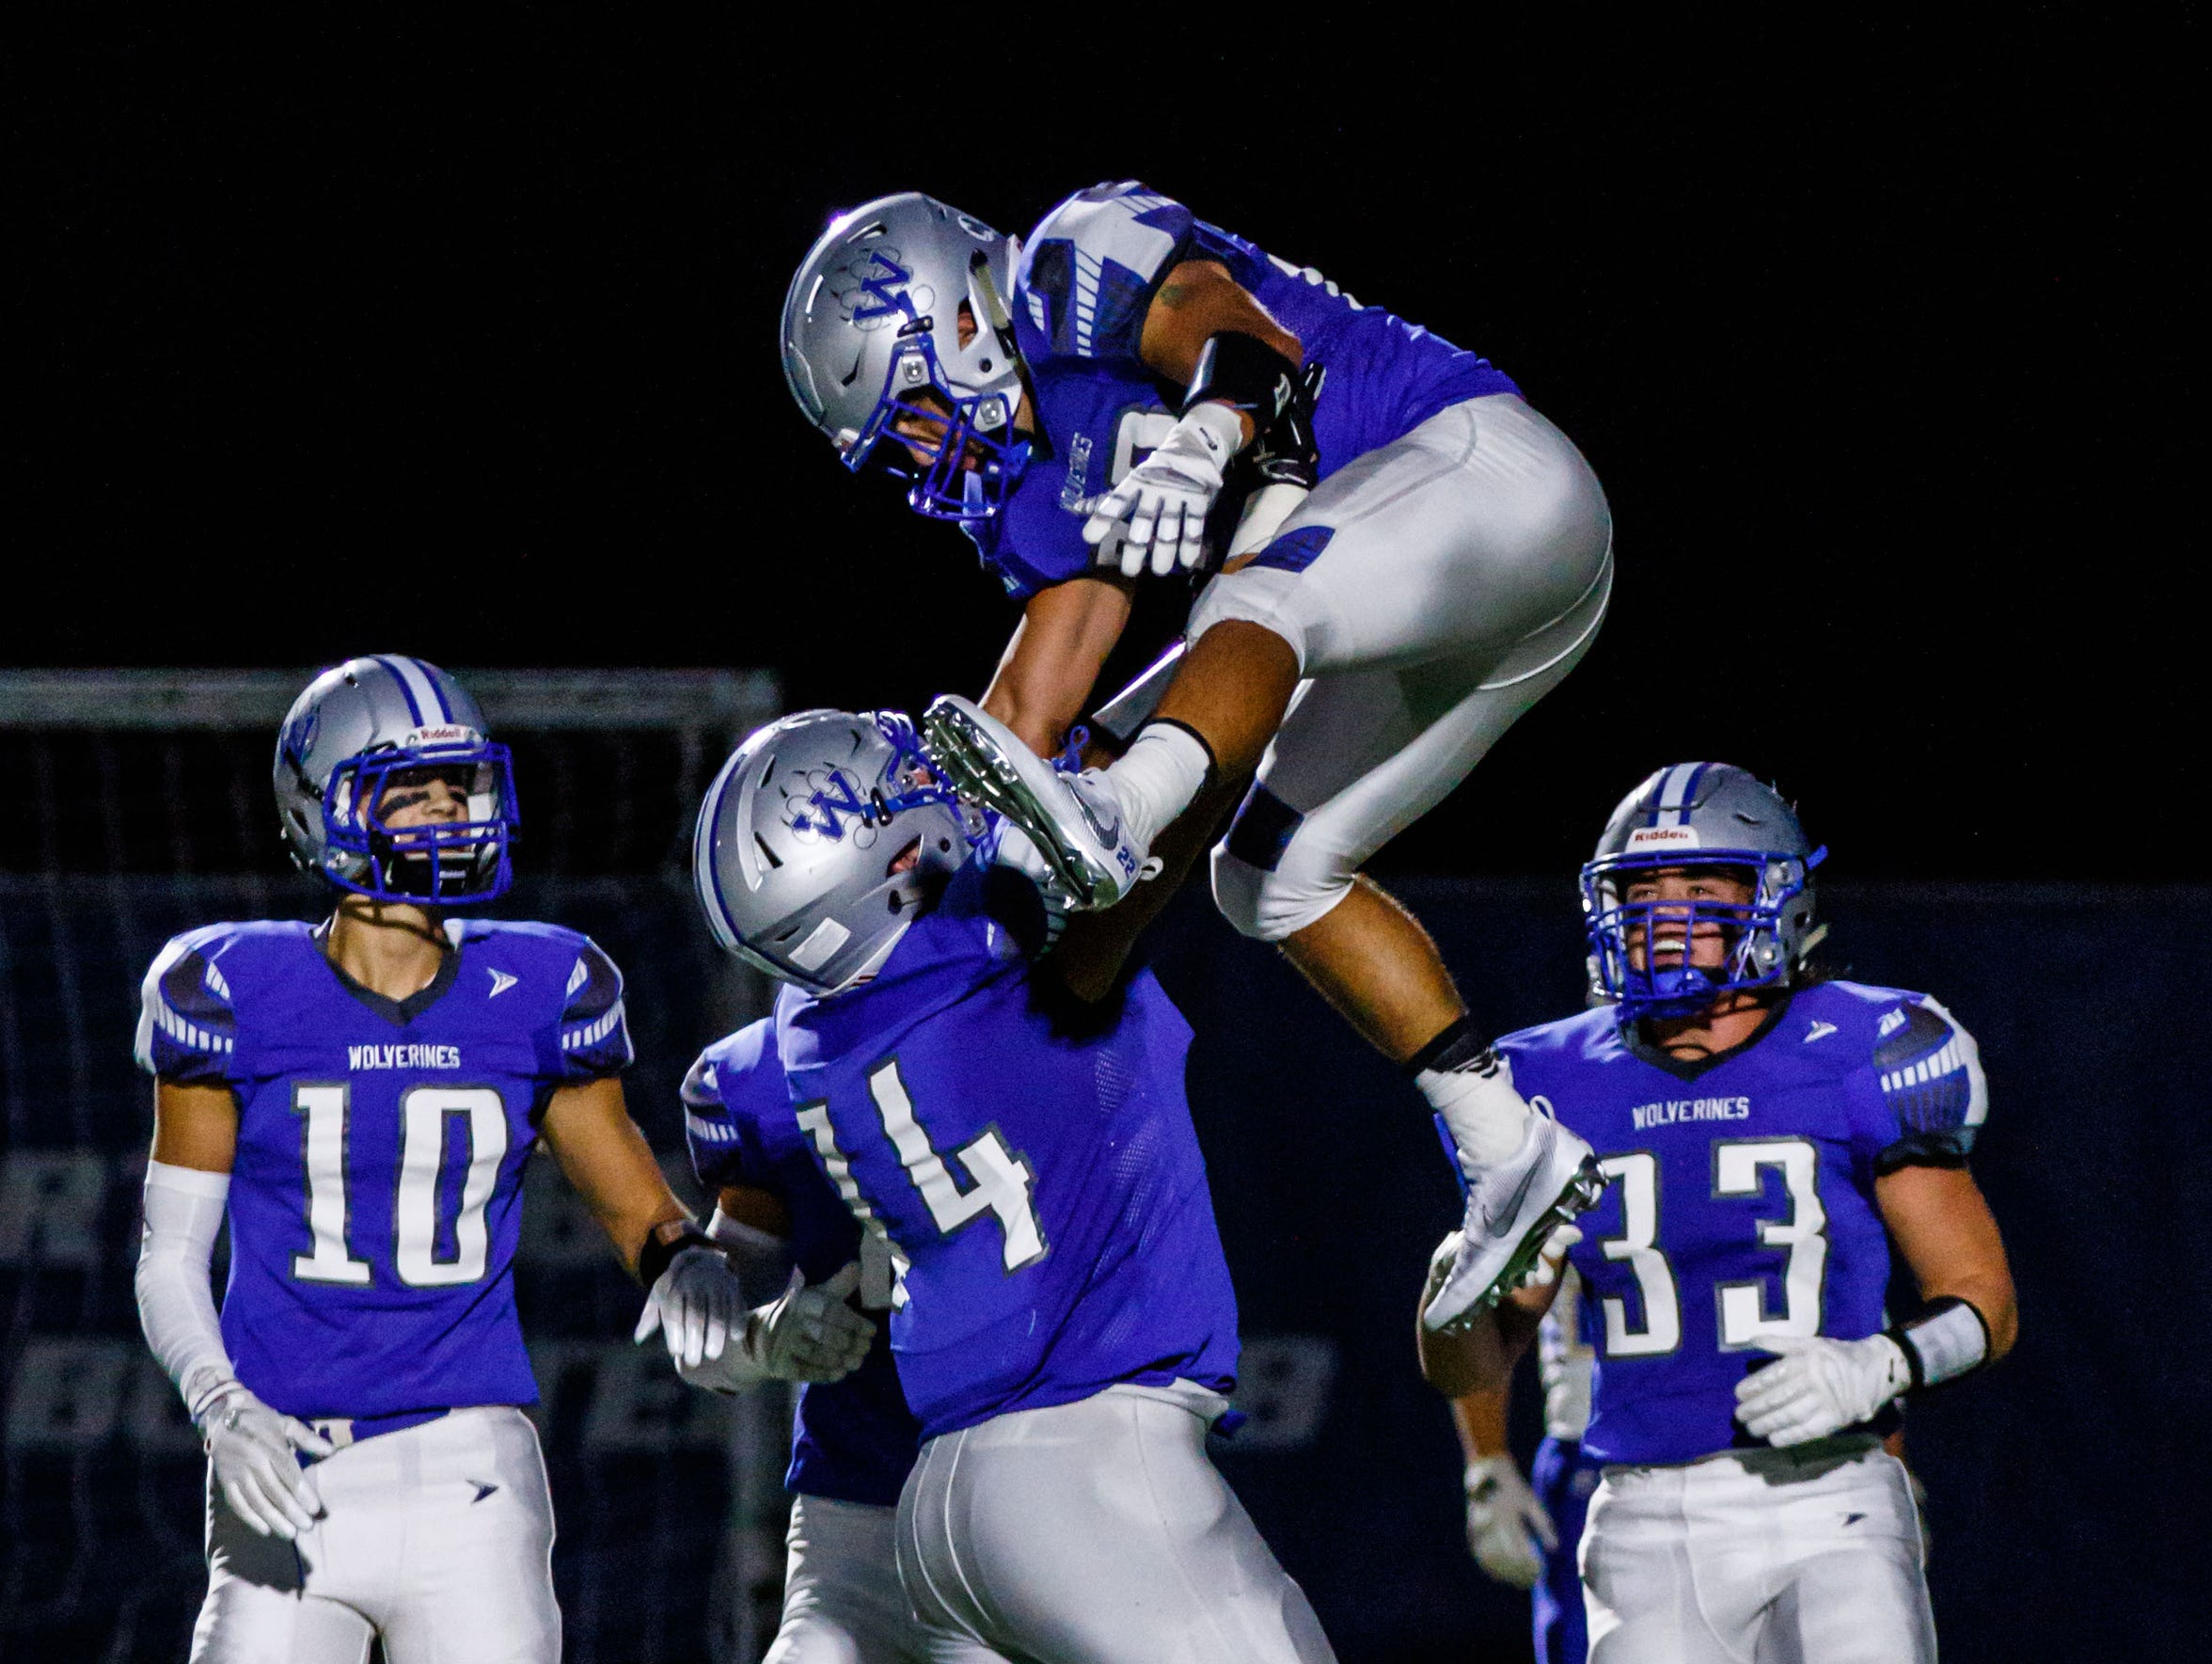 Waukesha West lineman Bryce Texeira (74) hoists teammate